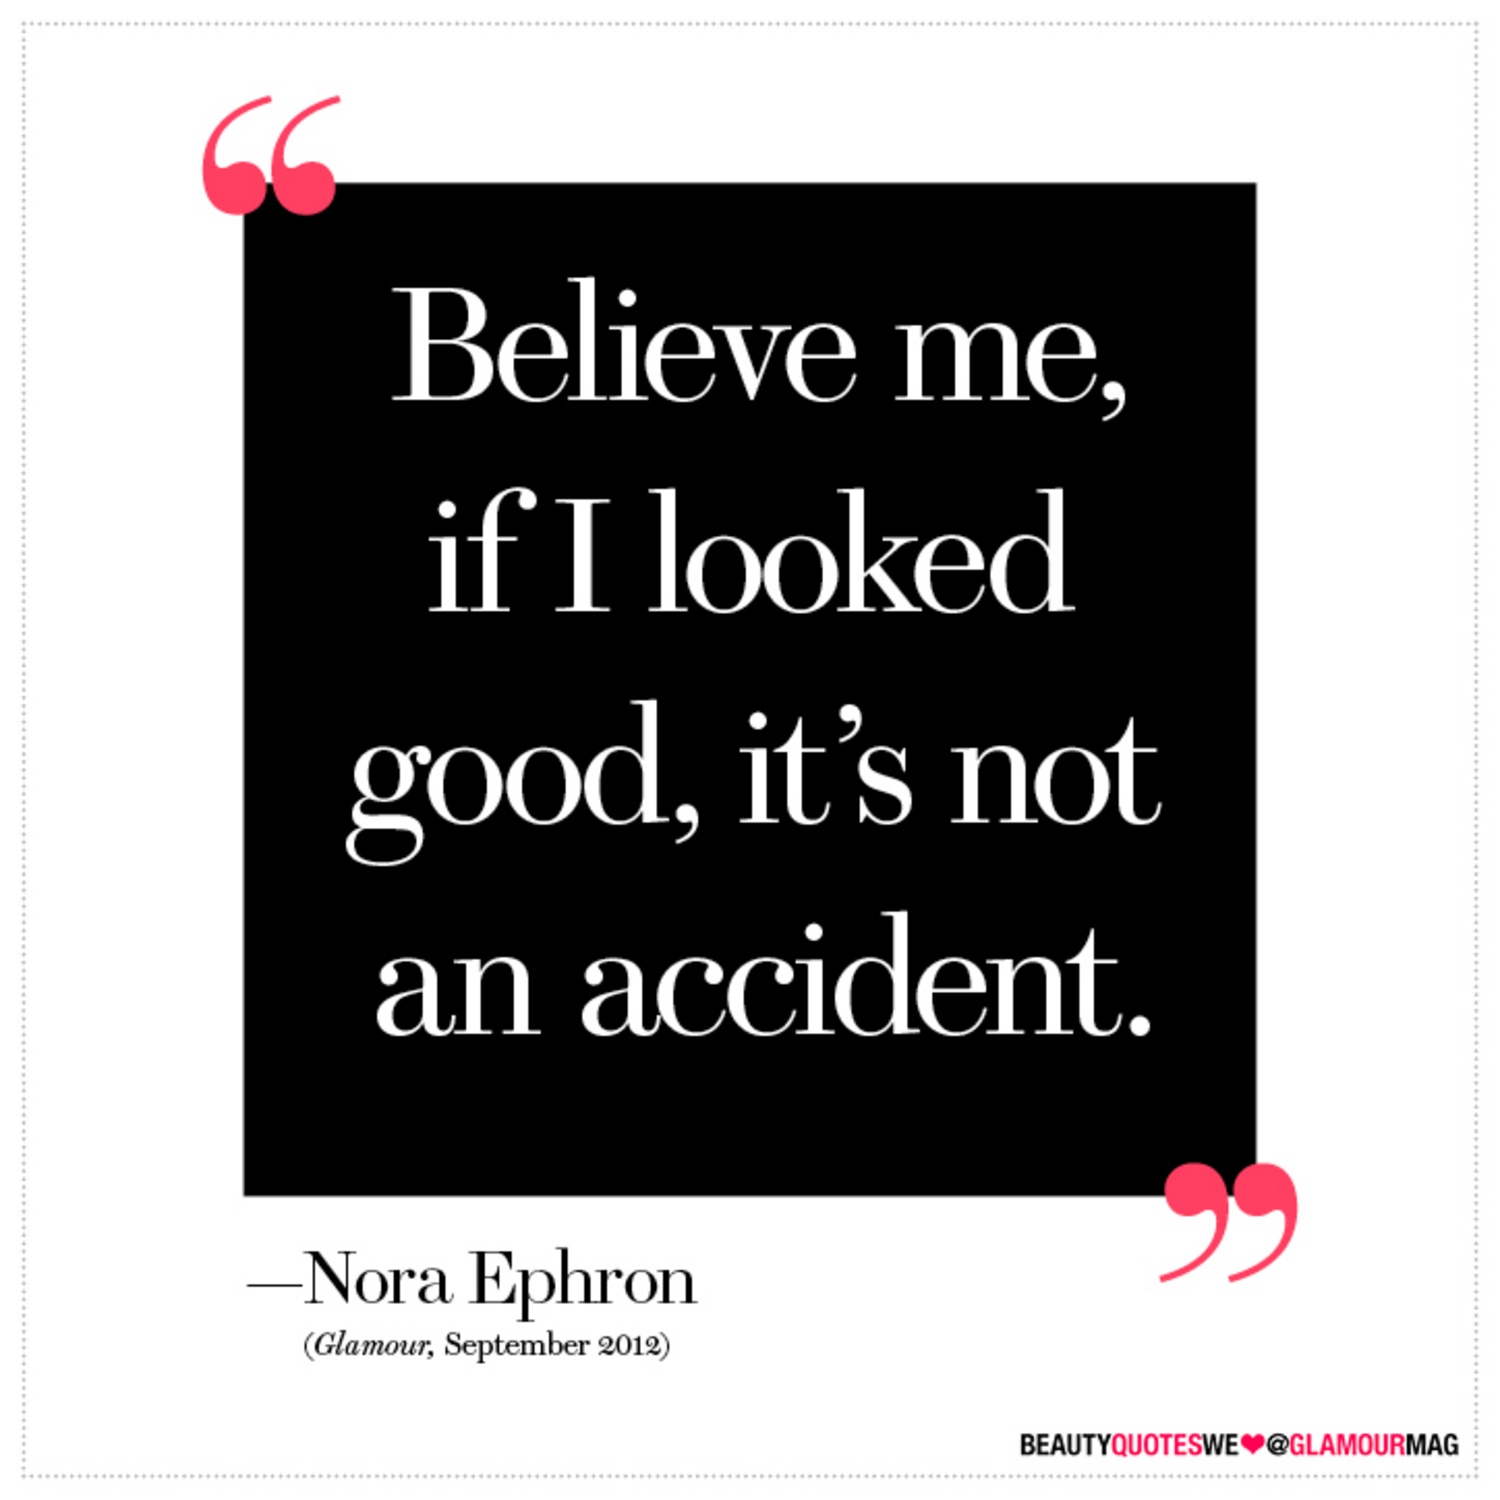 """nora ephron famous essays I think of the nora ephron essay """"on  the results are not all that different from one of her most famous  but i would argue that ephron's essays ."""